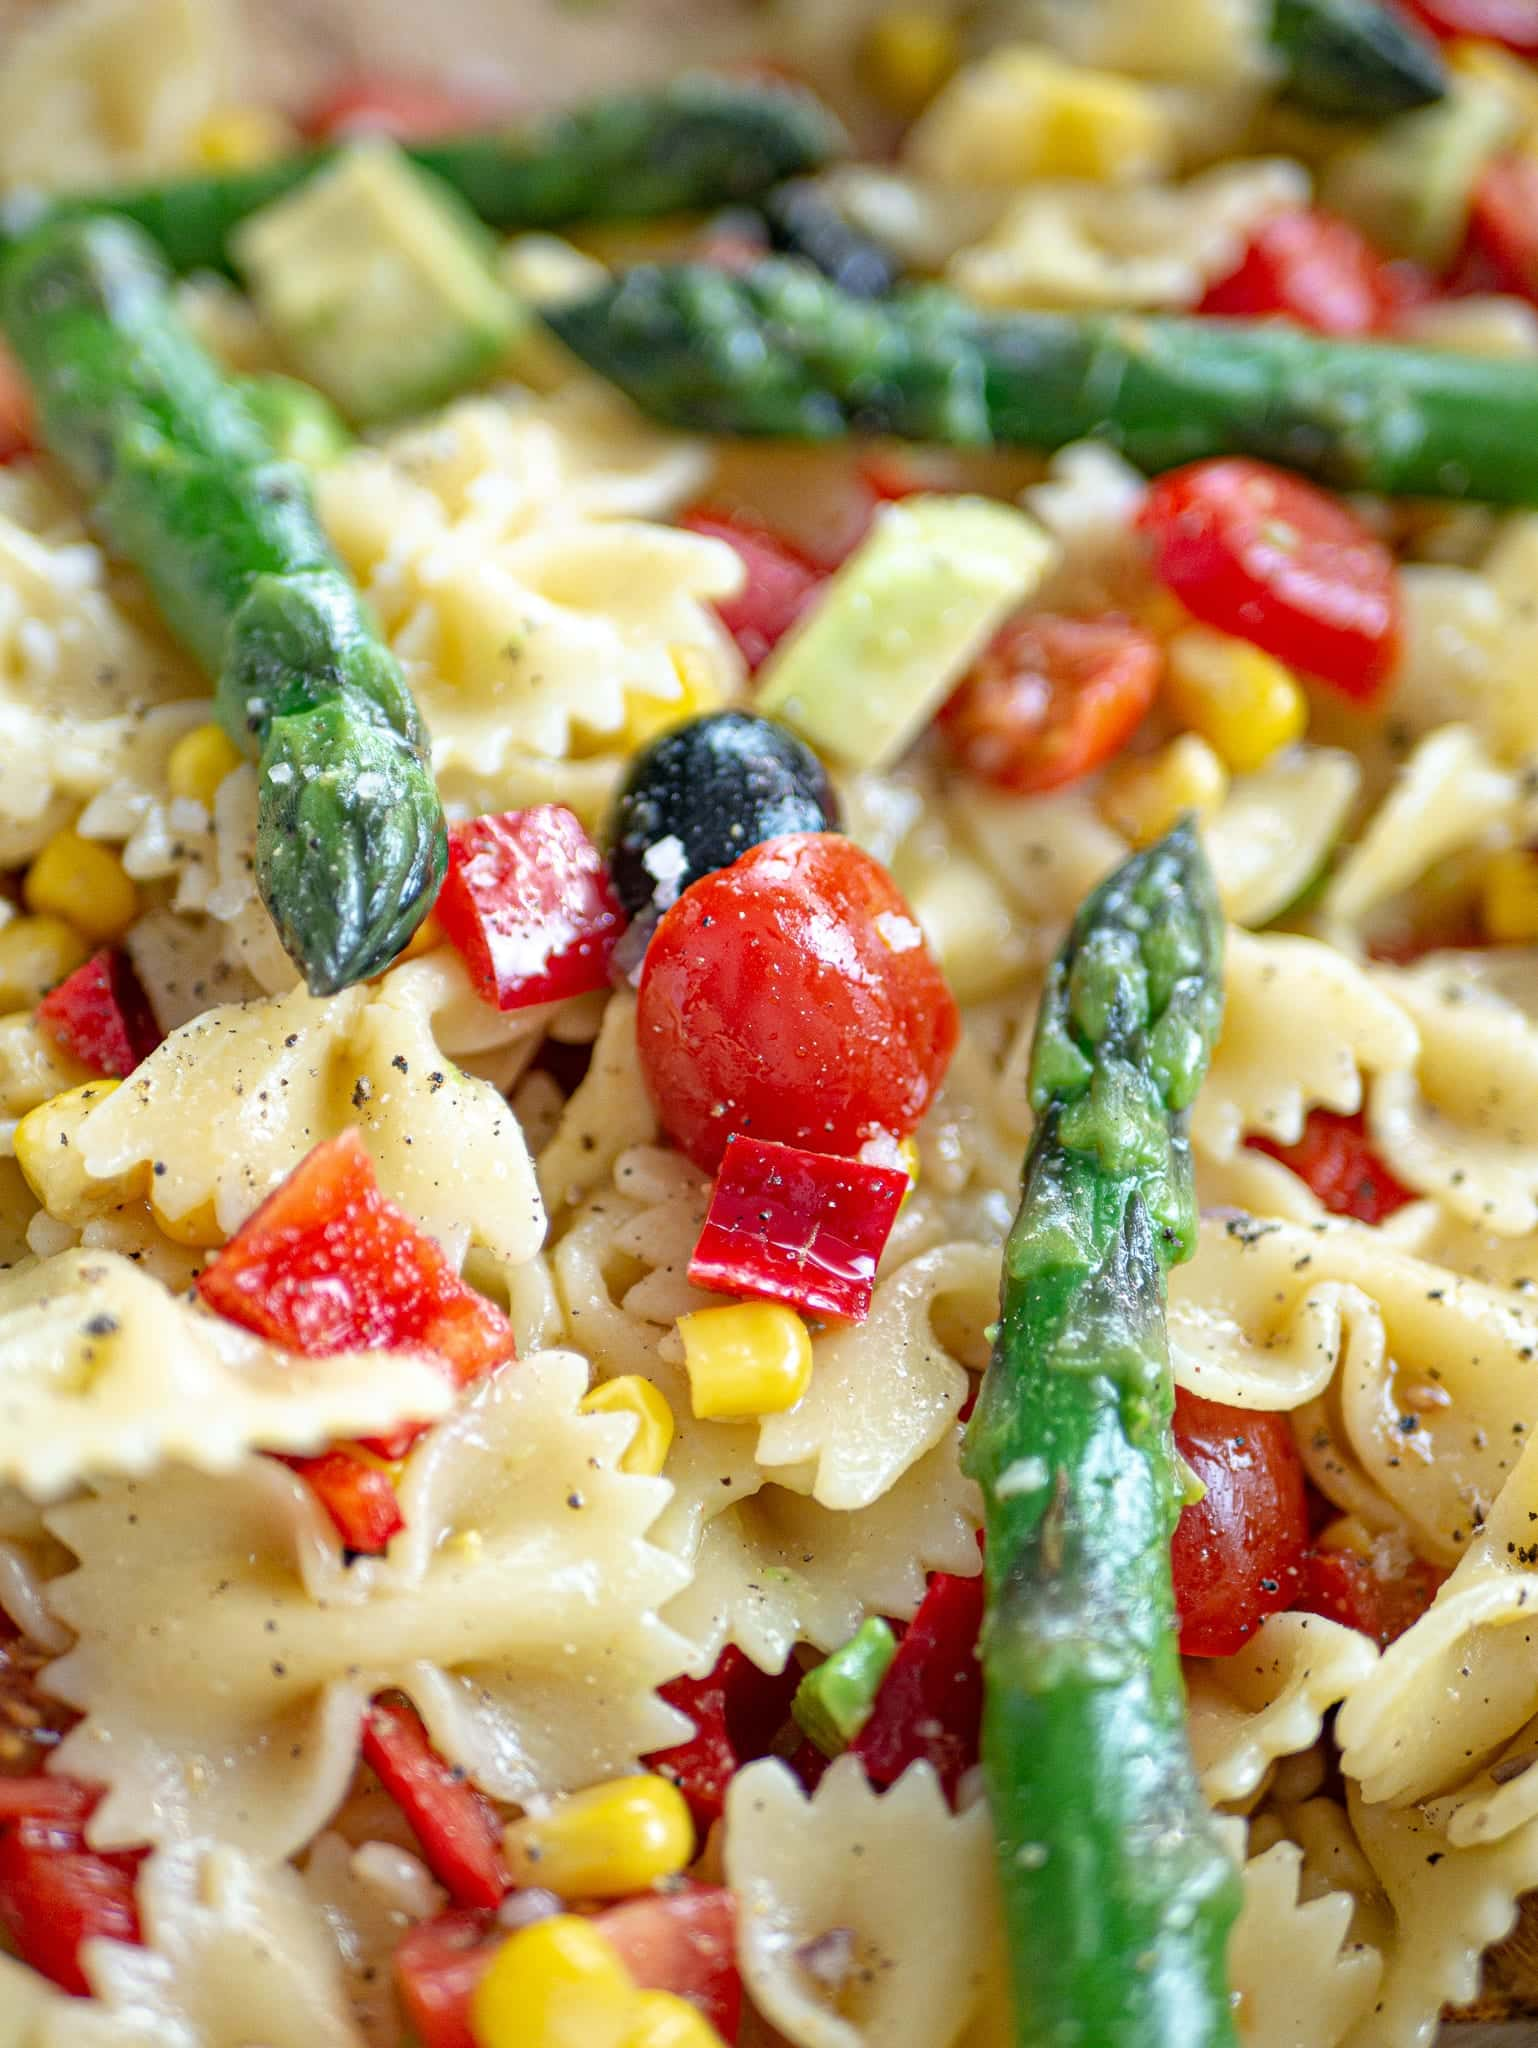 COLD PASTA SALAD CLOSE UP